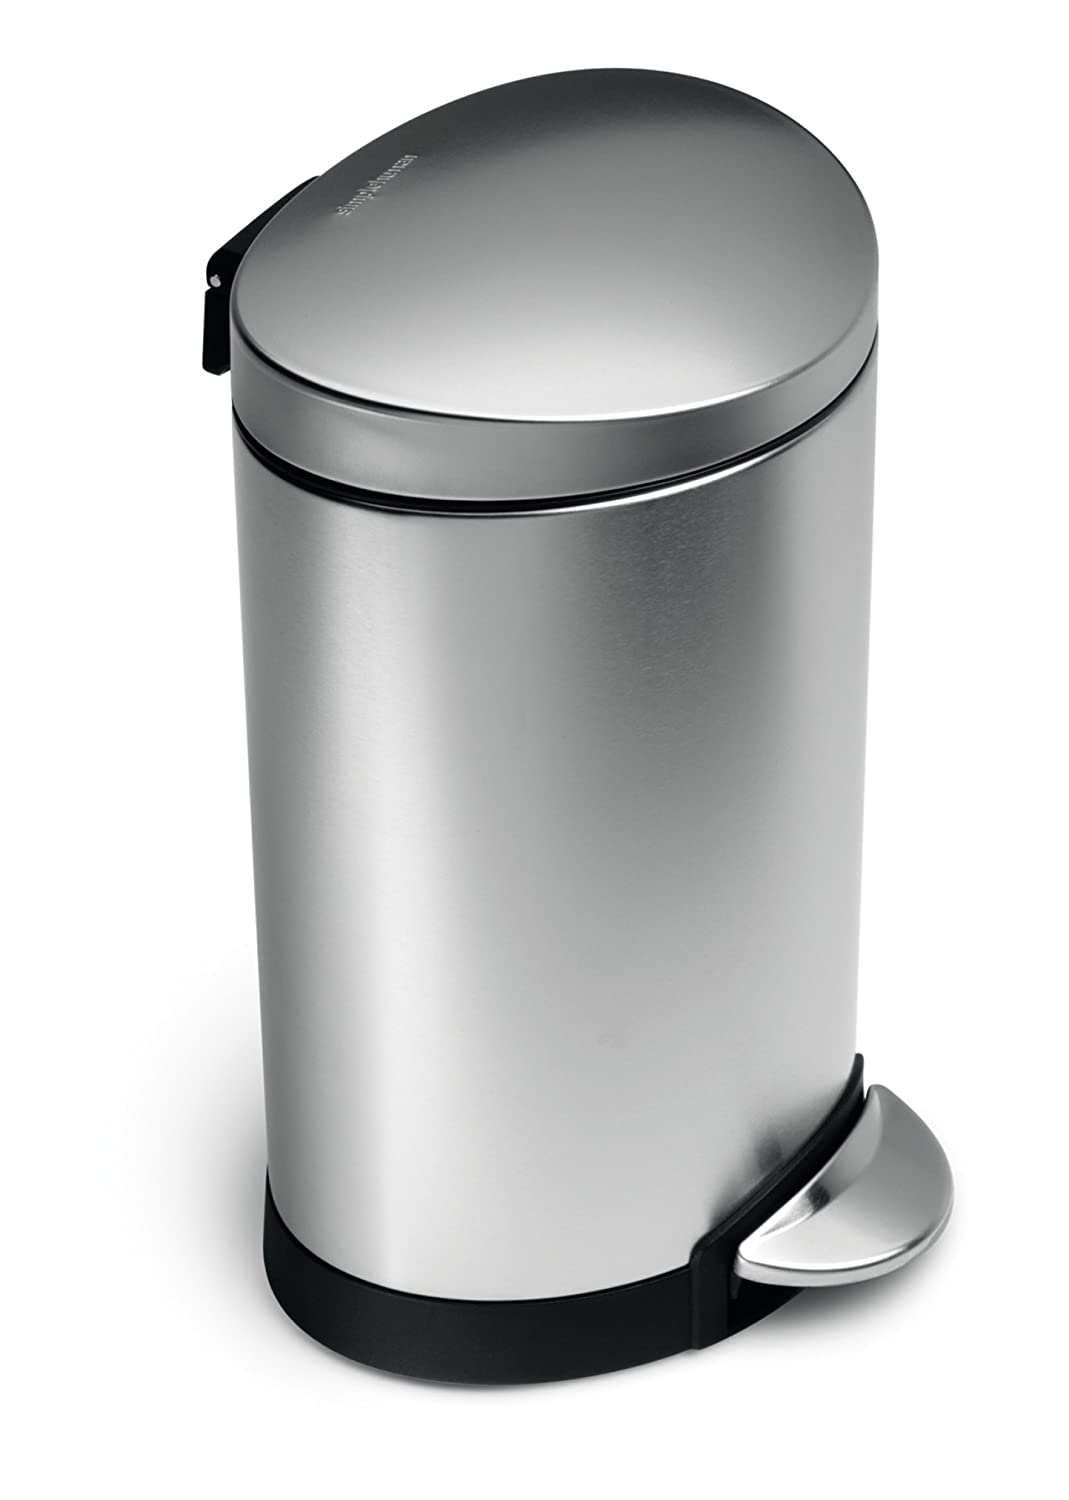 Kitchen Garbage Can With Lid Stainless Steel Kitchen Trash Can Garbage Waste Bin Pedal